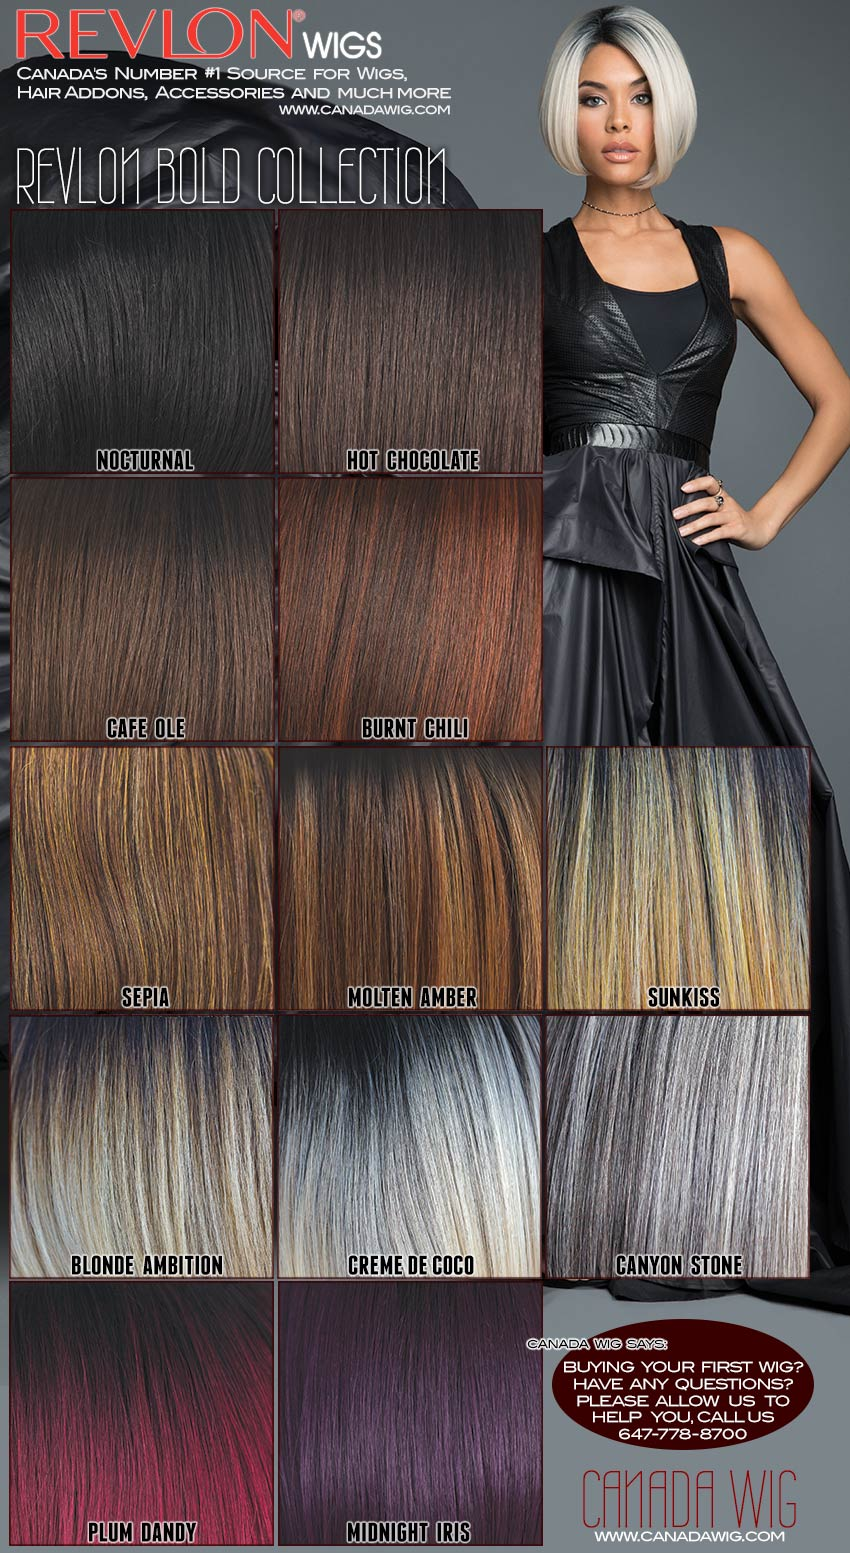 Revlon Wig Bold Collection Color Charts - www.canadawig.com | CANADA WIG